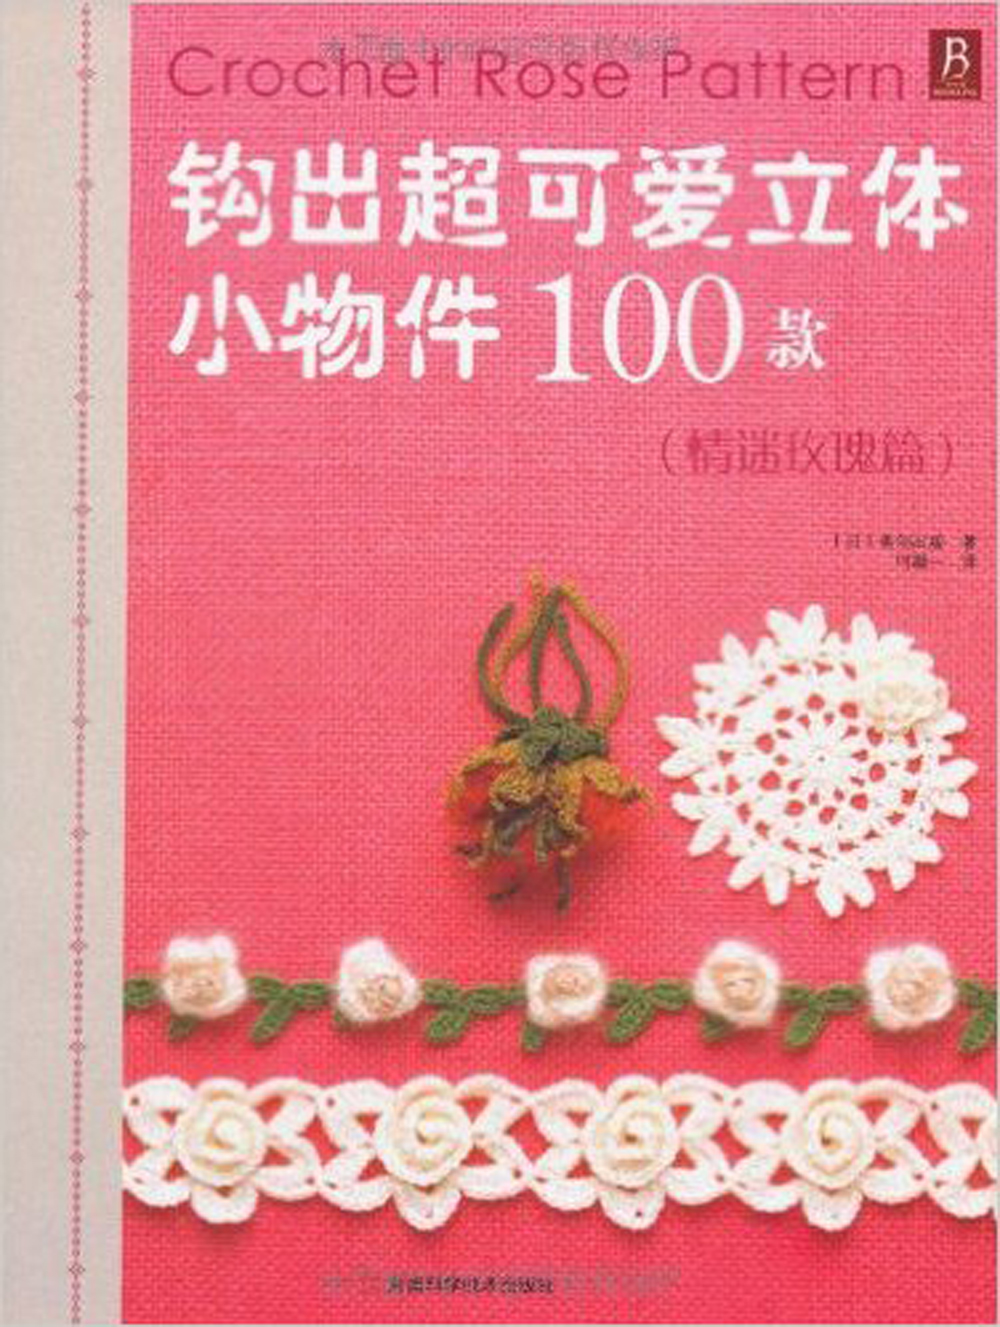 Crochet Rose Pattern Book In Chinese / Weaving Super-cute 3d Small Objects 100 Models Chinese Knitting Book